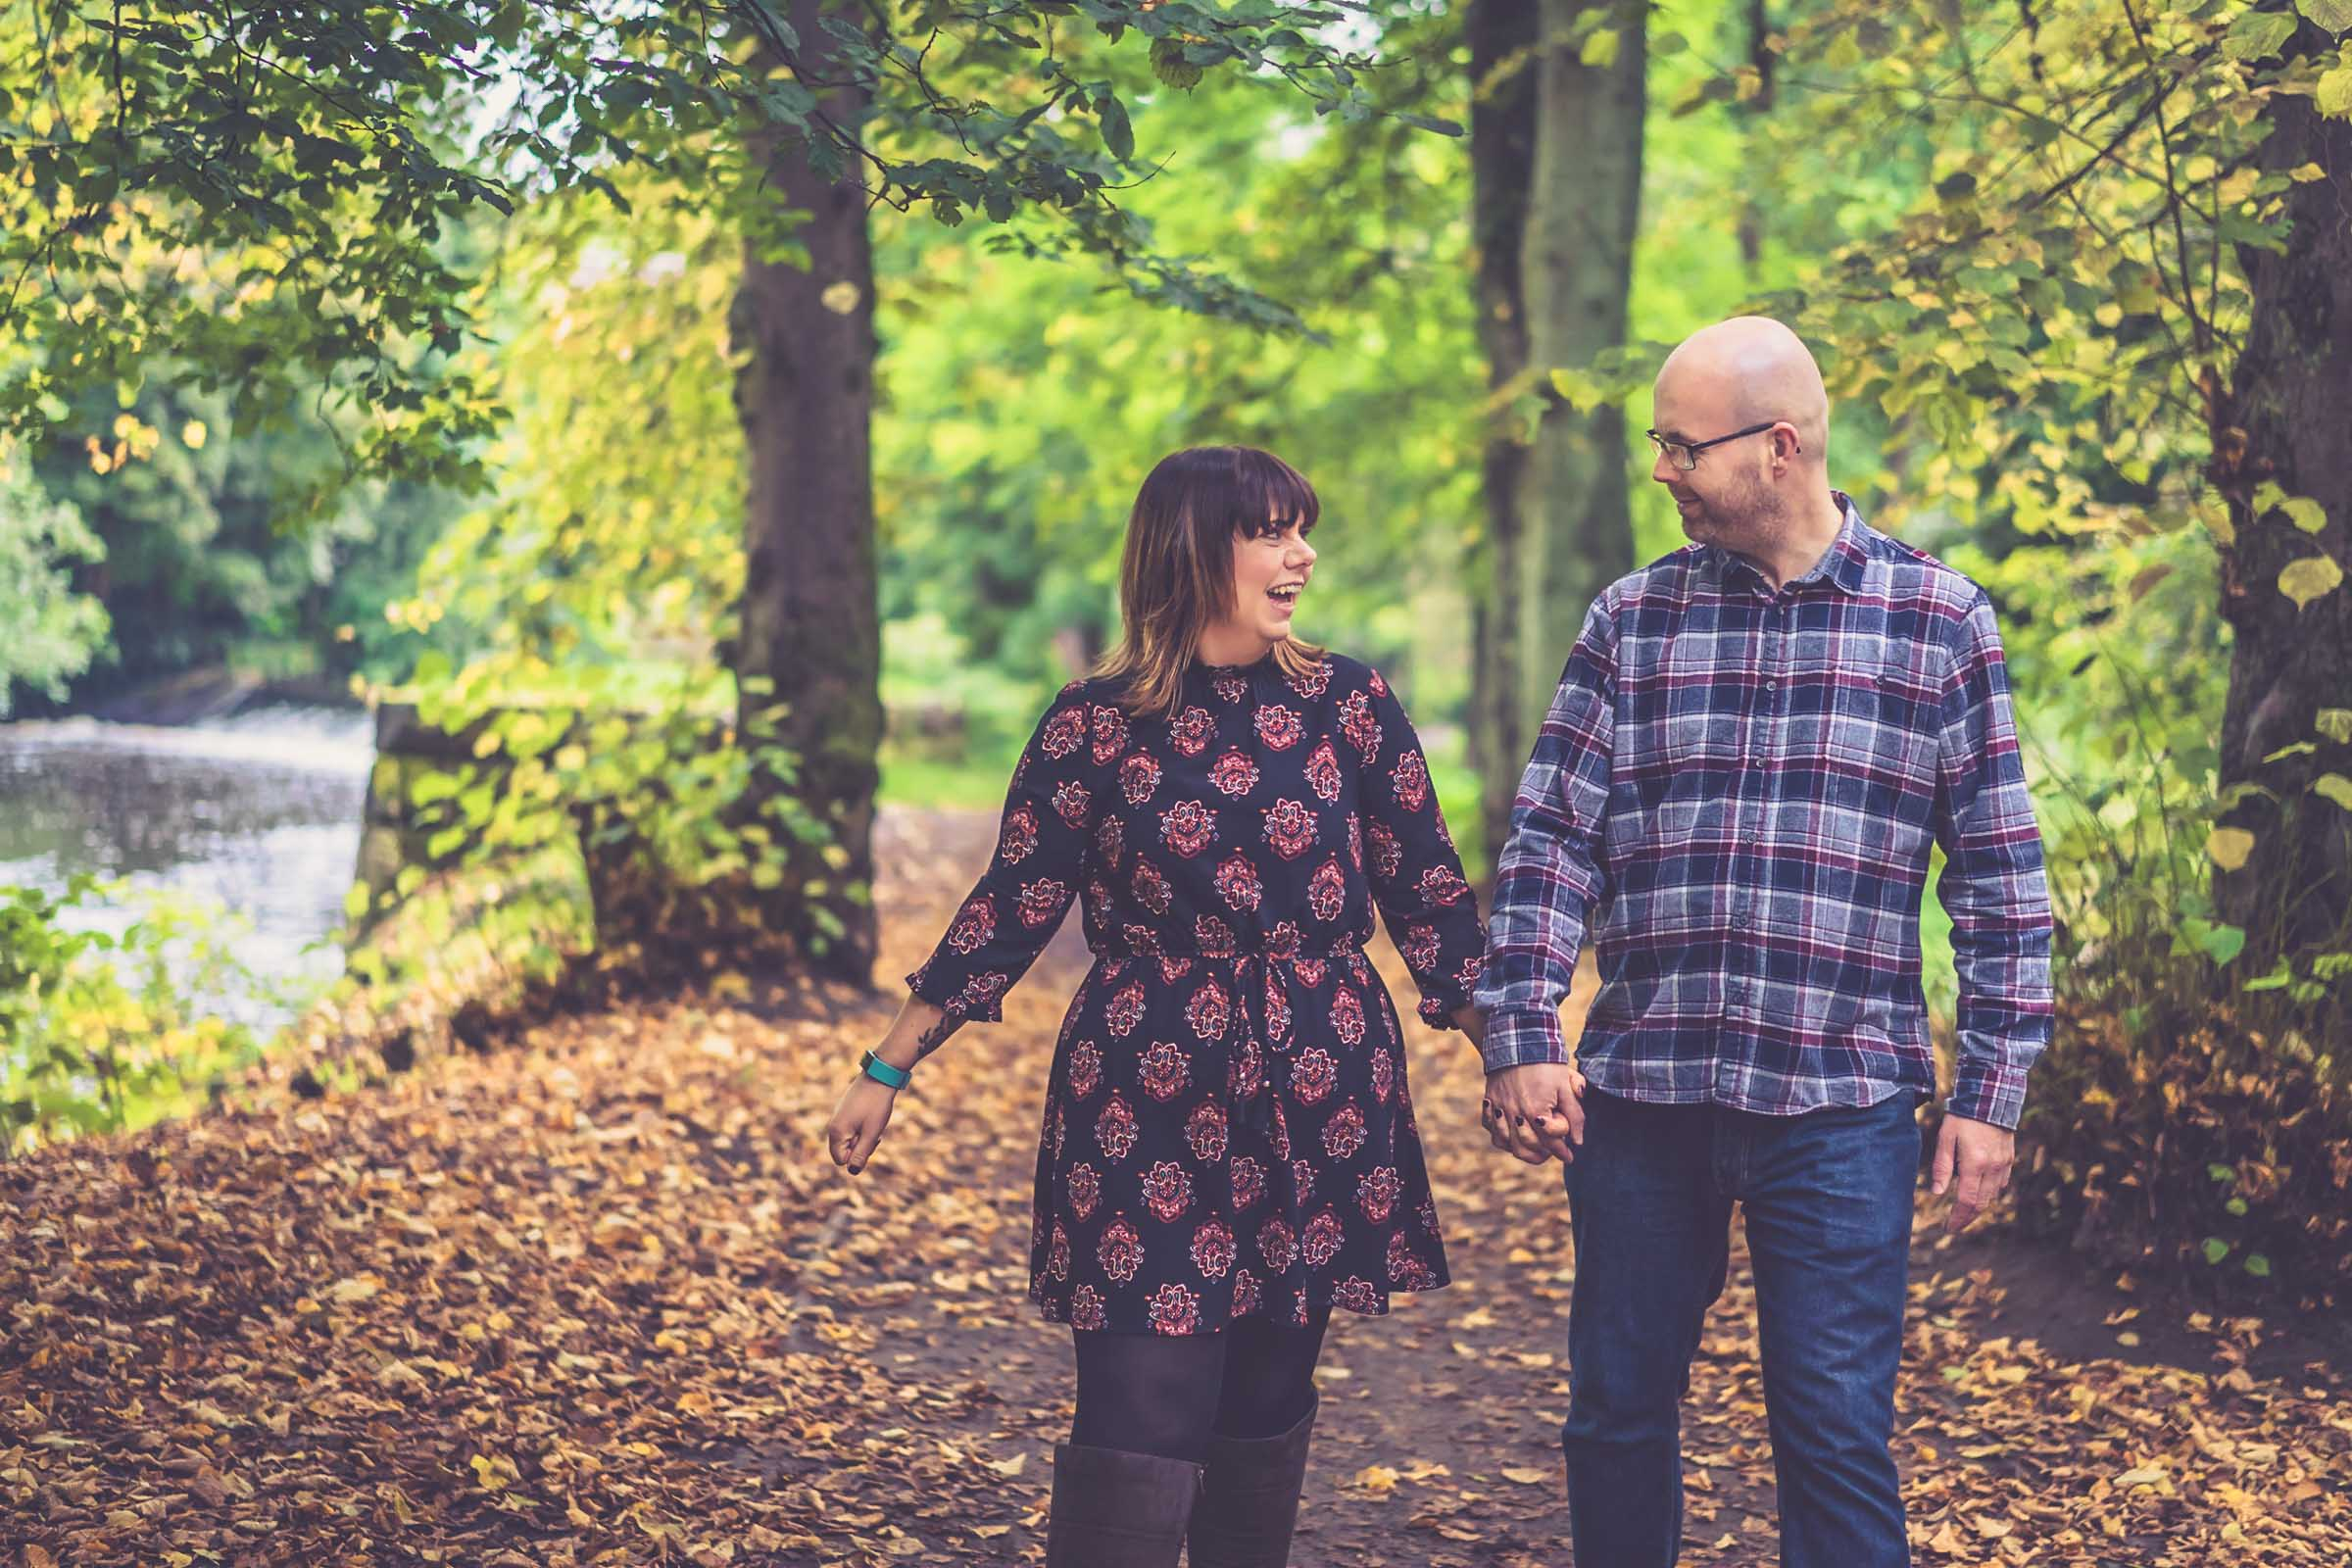 scottish-engagement-photography-elopement-dearlyphotography (29 of 45).jpg